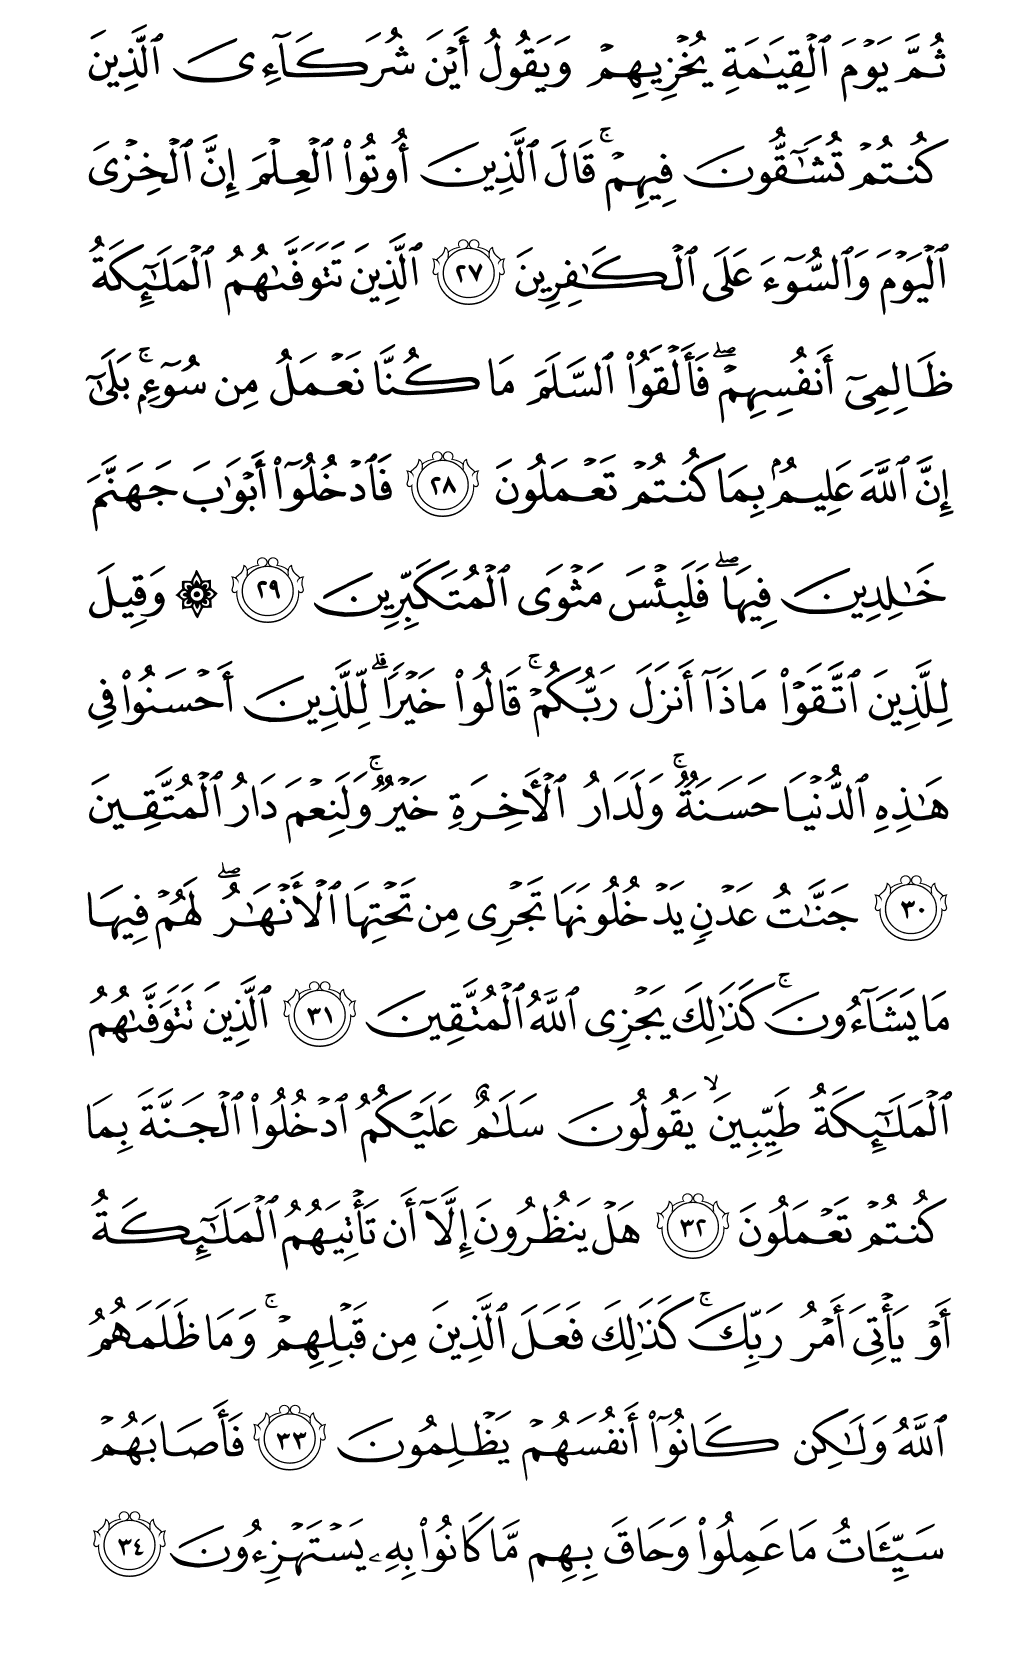 an nahl 27 34, the noble qur\u0027an (juz\u0027 14, page 270)16 an nahl 34 so they were struck by their evil deeds they used to mock at surrounded them